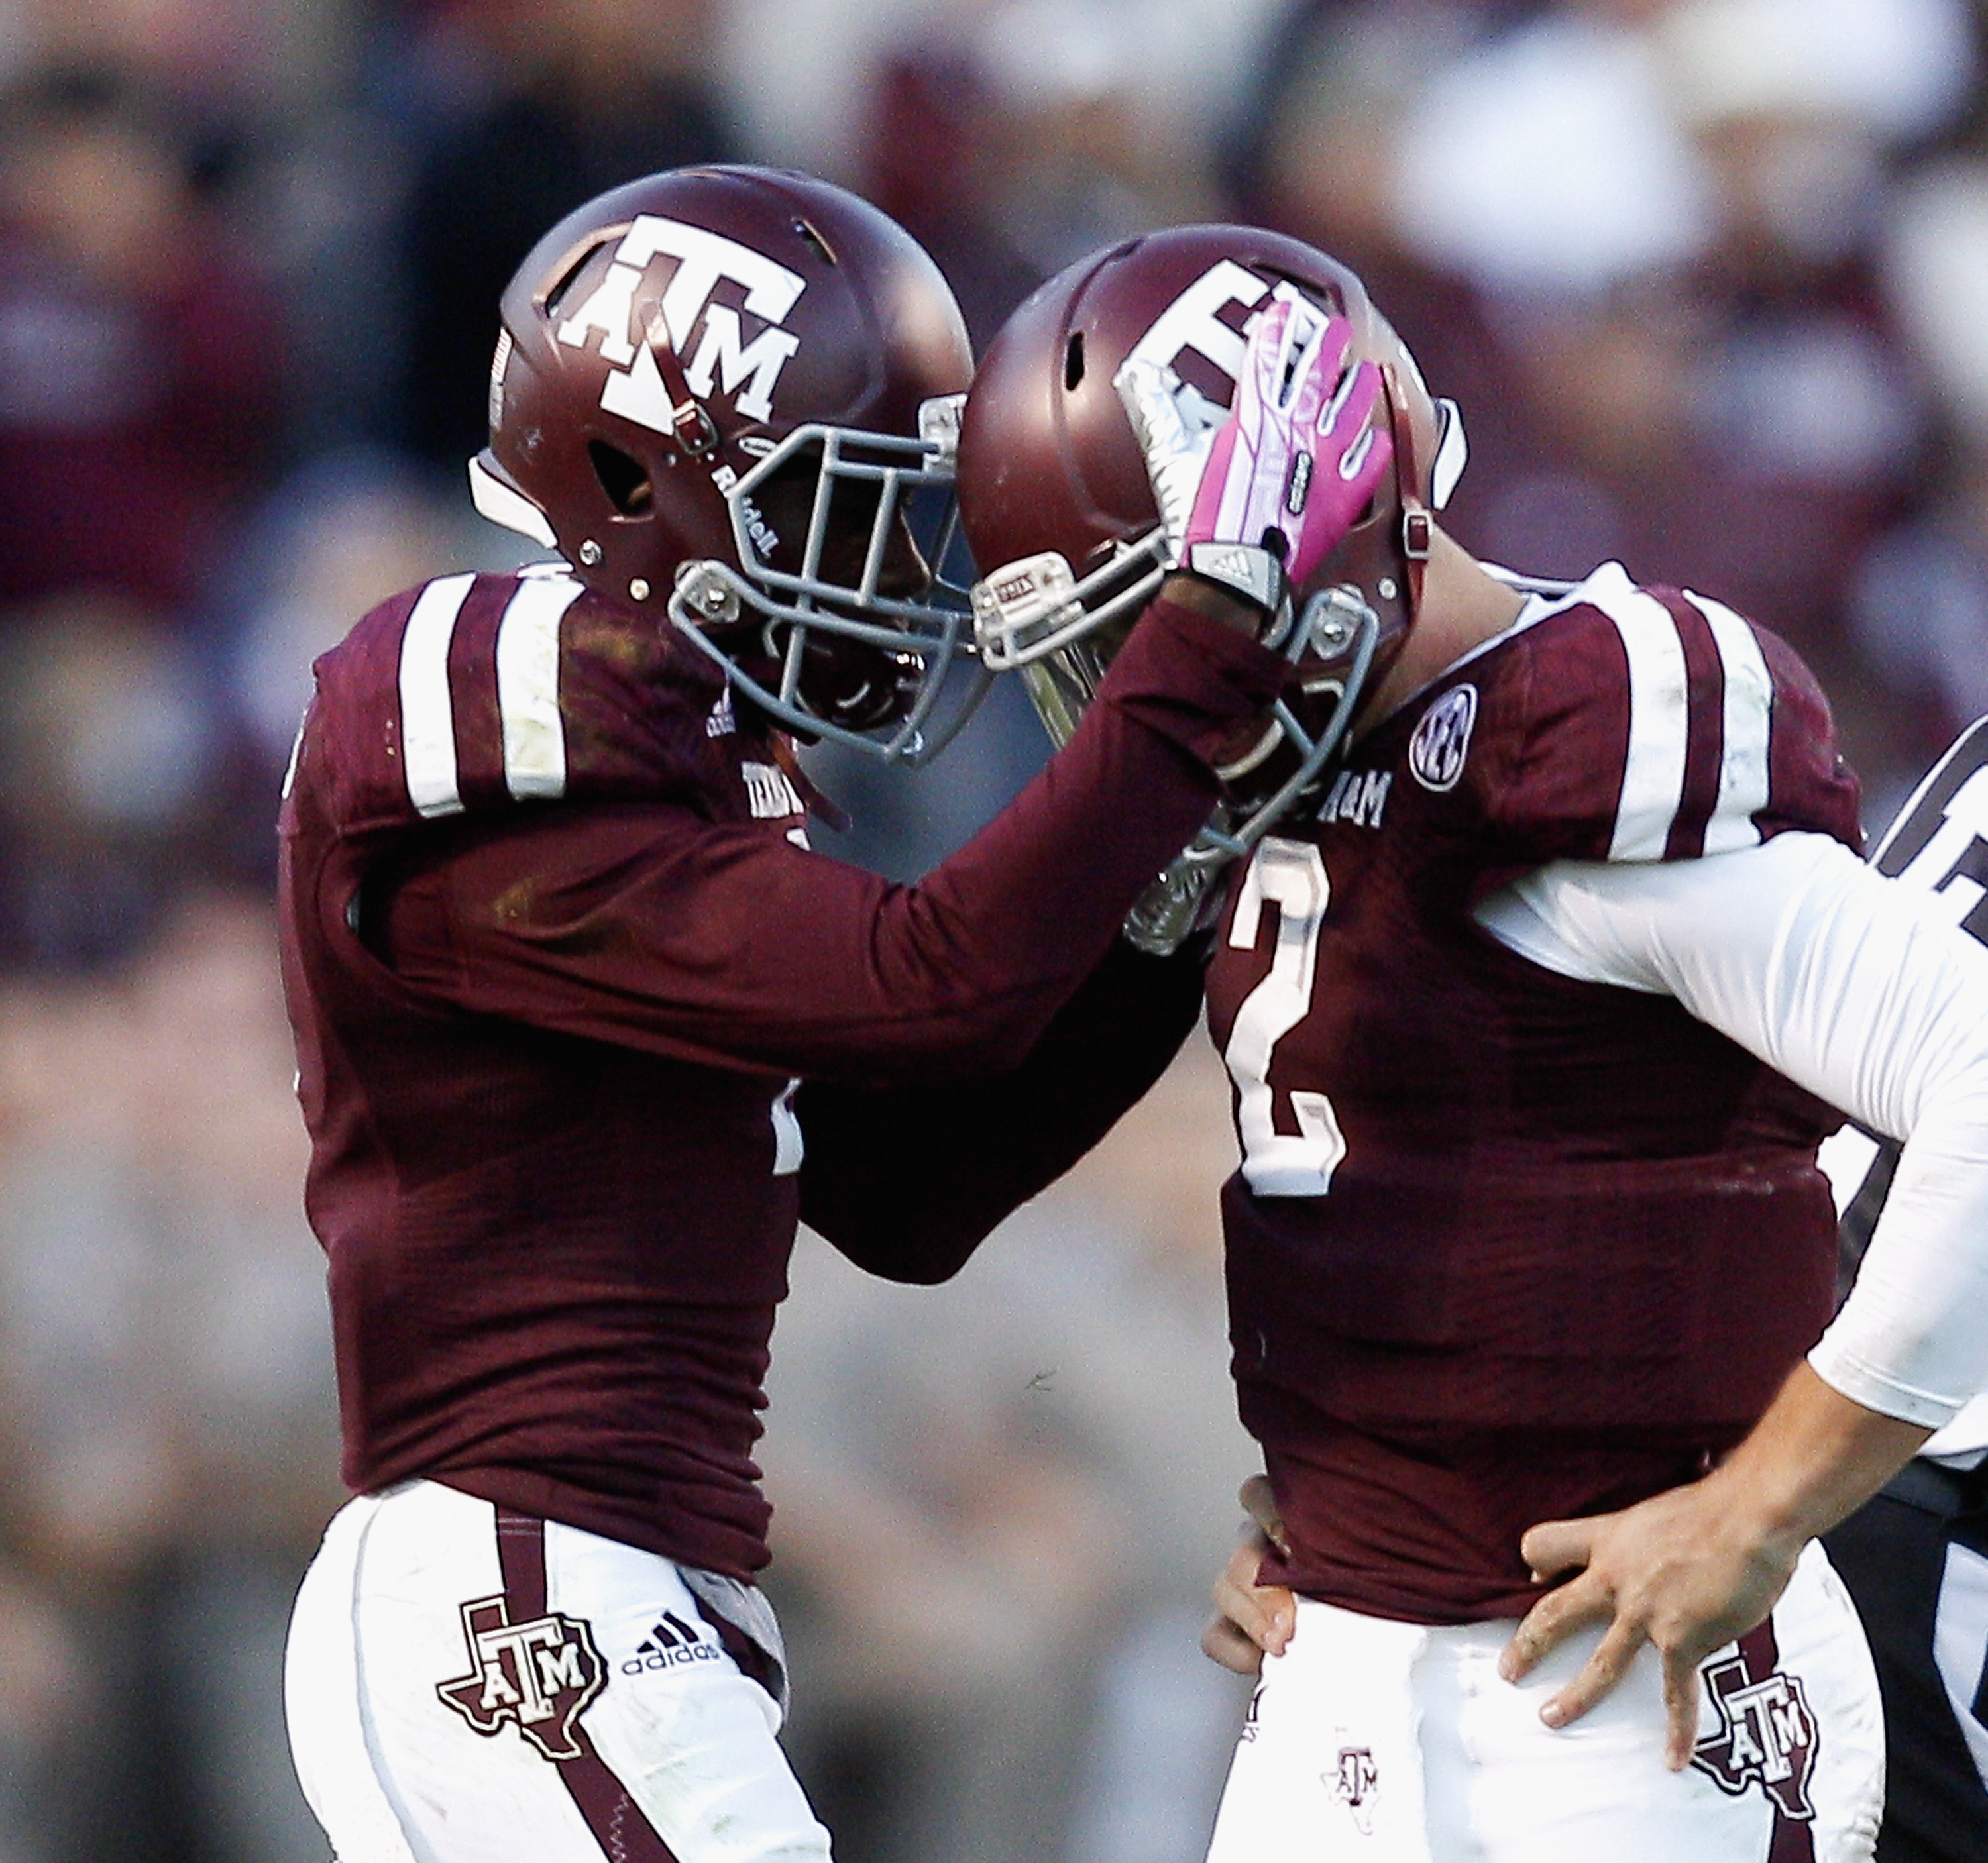 Texas A&M quarterback Johnny Manziel (2) is consoled by running back Ben Malena (1) after he was sacked on their final play in the fourth quarter against Auburn in an NCAA college football game Saturday, Oct. 19, 2013, in College Station, Texas. Auburn won 45-41. (AP Photo/Bob Levey)